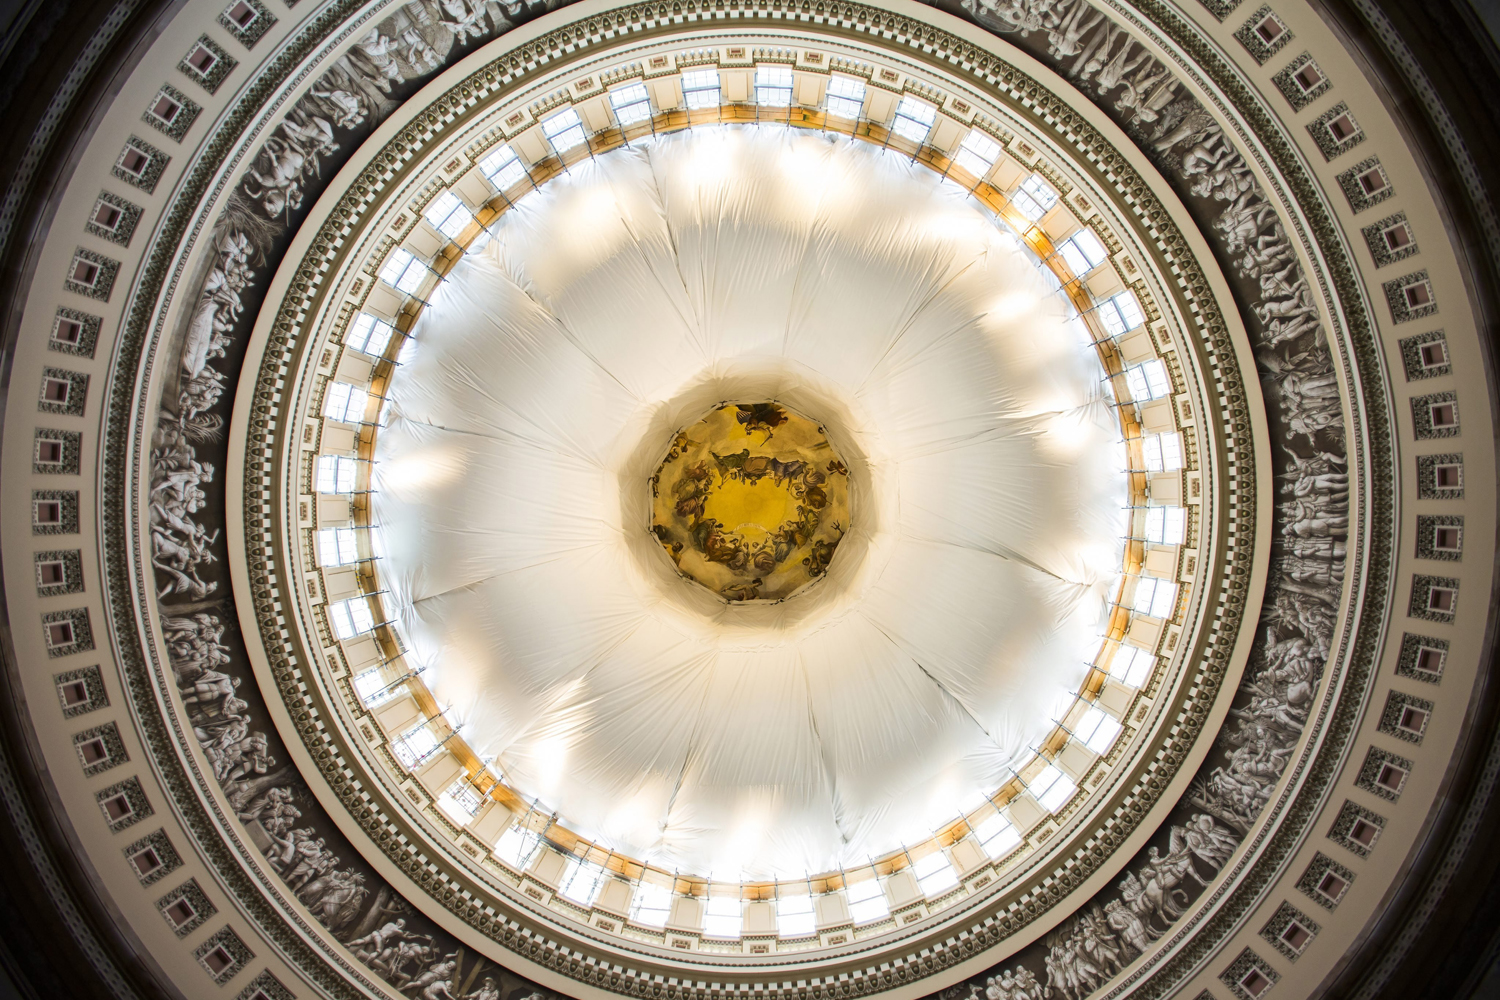 Jul 11, 2014. A donut shaped canopy hangs in the rotunda of the US Capitol to catch debris during work to repair the interior of the Dome in Washington, DC.